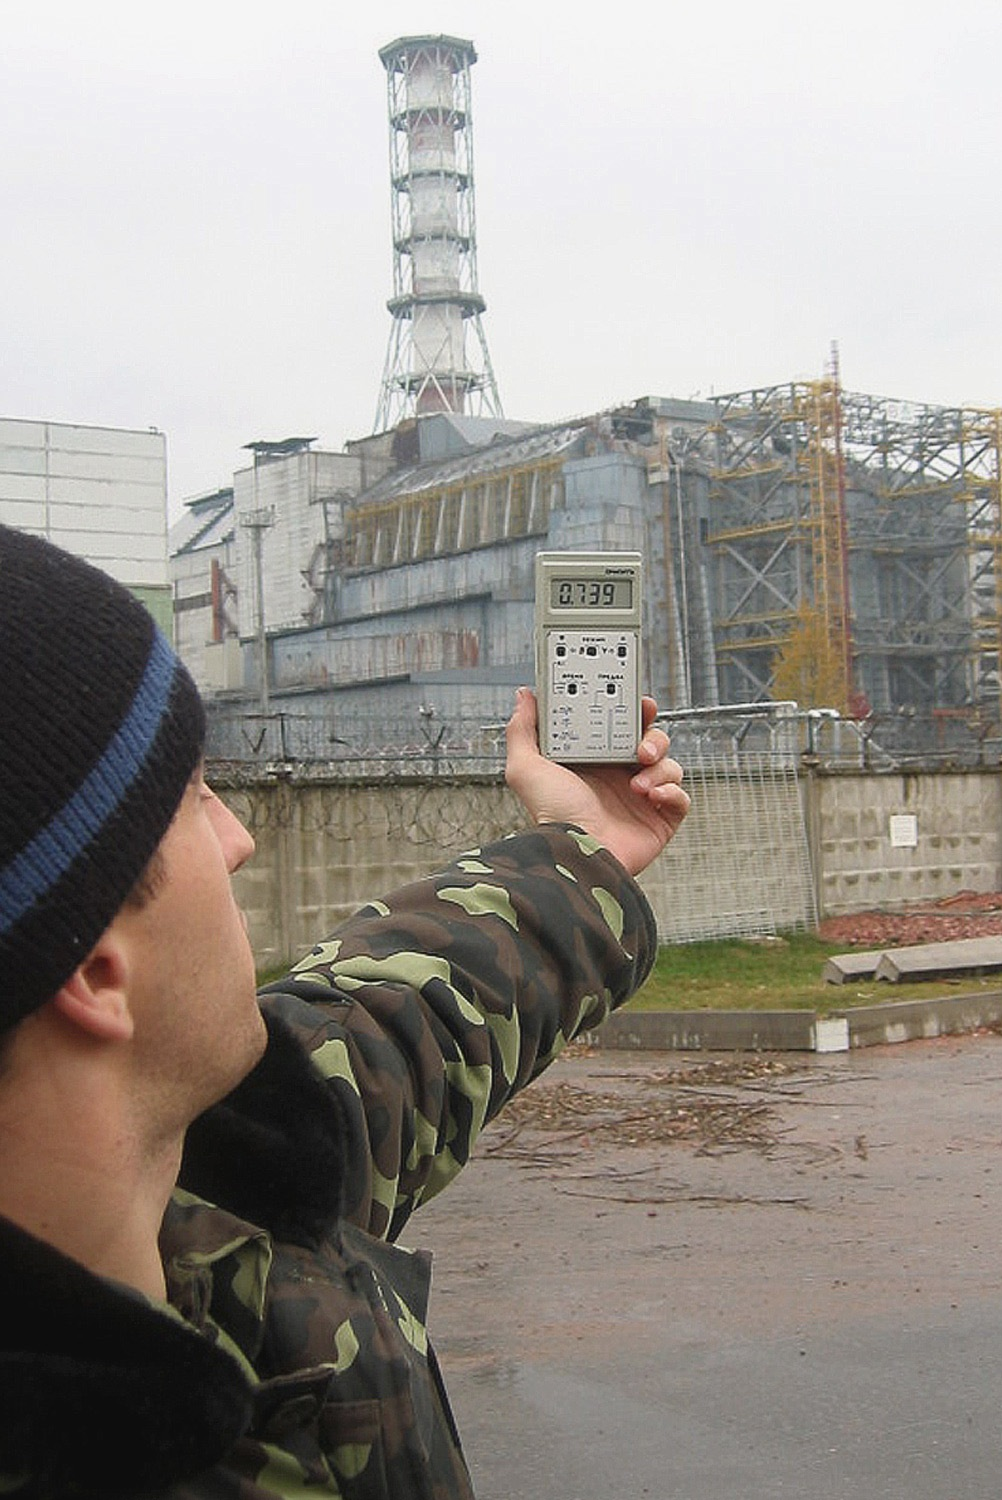 Chernobyl Reactor Four